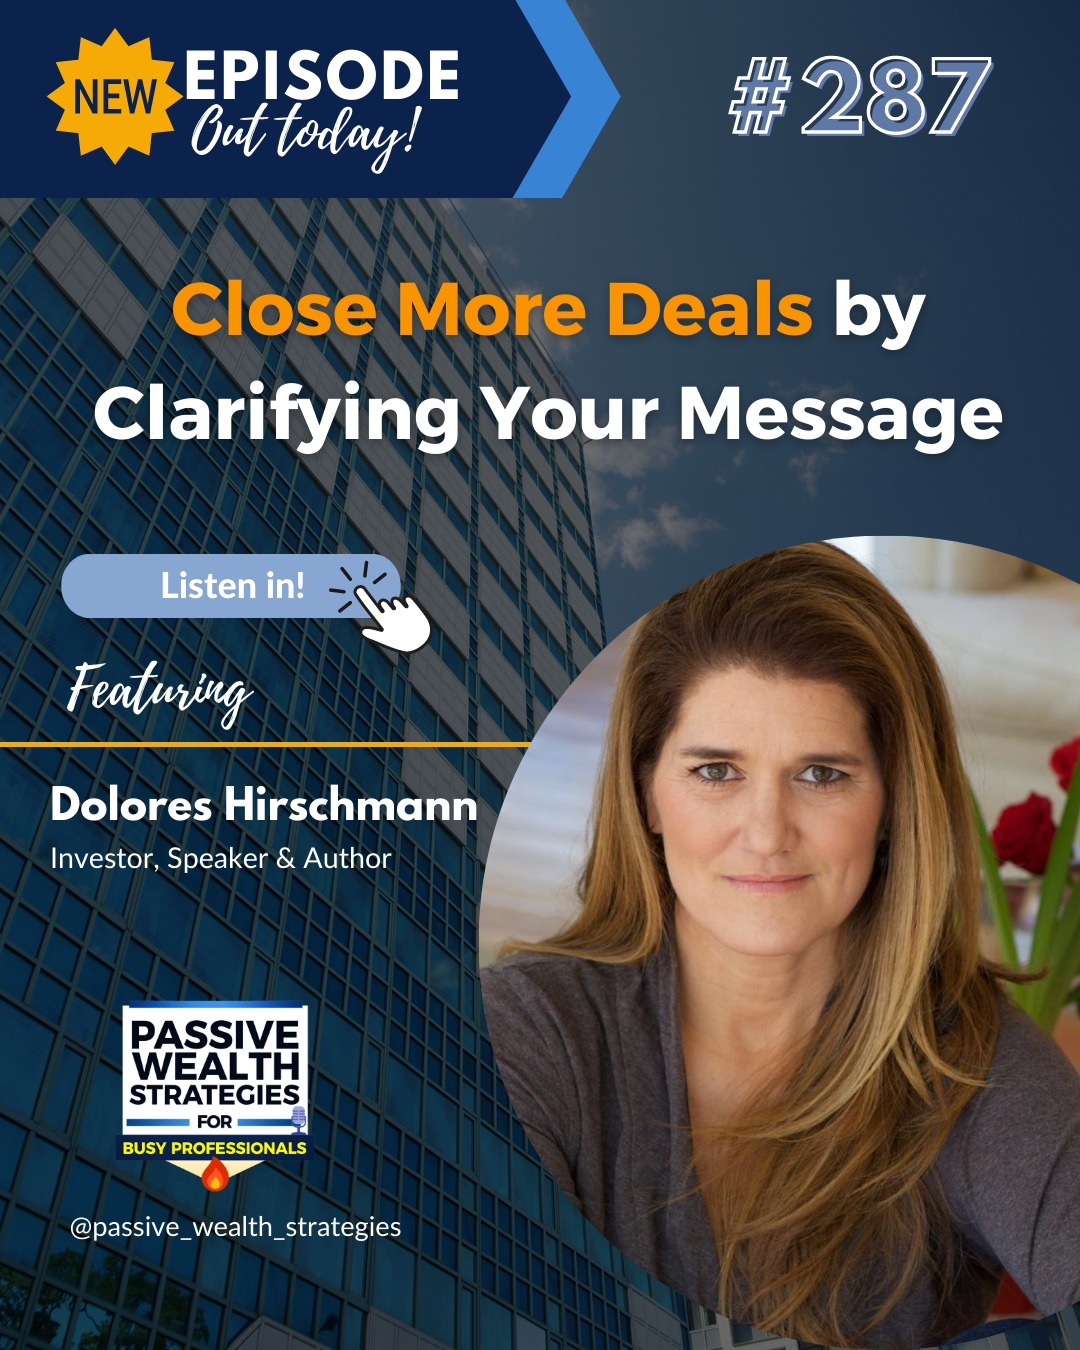 Close More Deals by Clarifying Your Message with Dolores Hirschmann